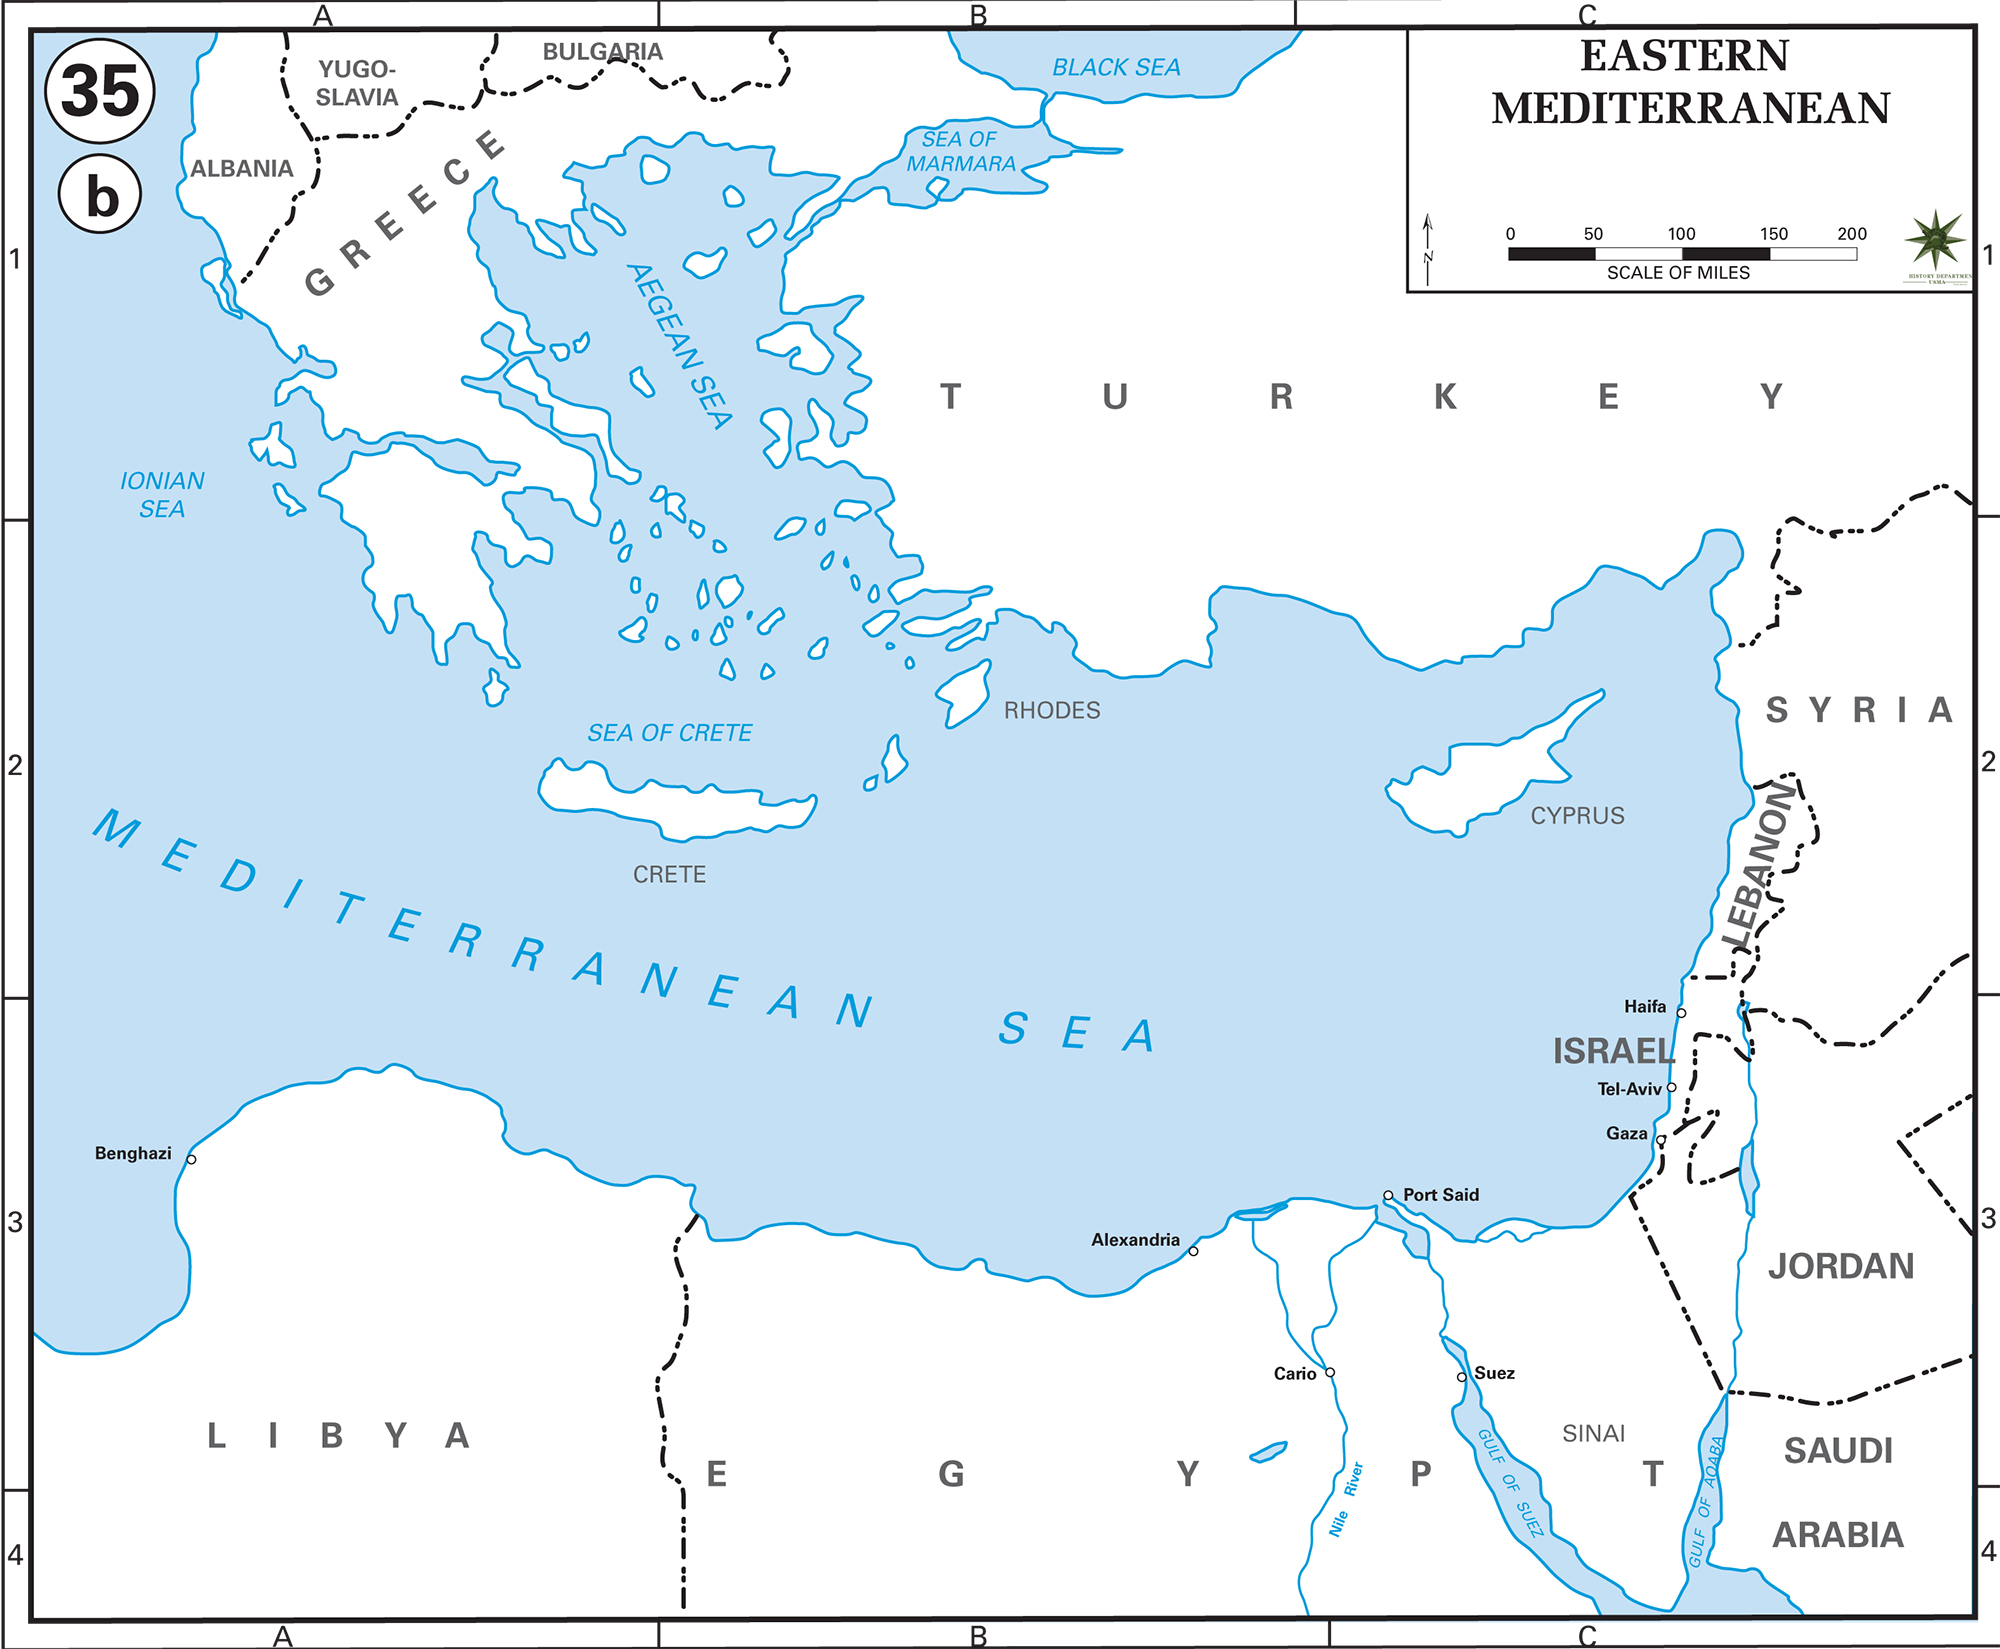 Map Of Eastern Mediterranean Countries - Map of egypt israel jordan